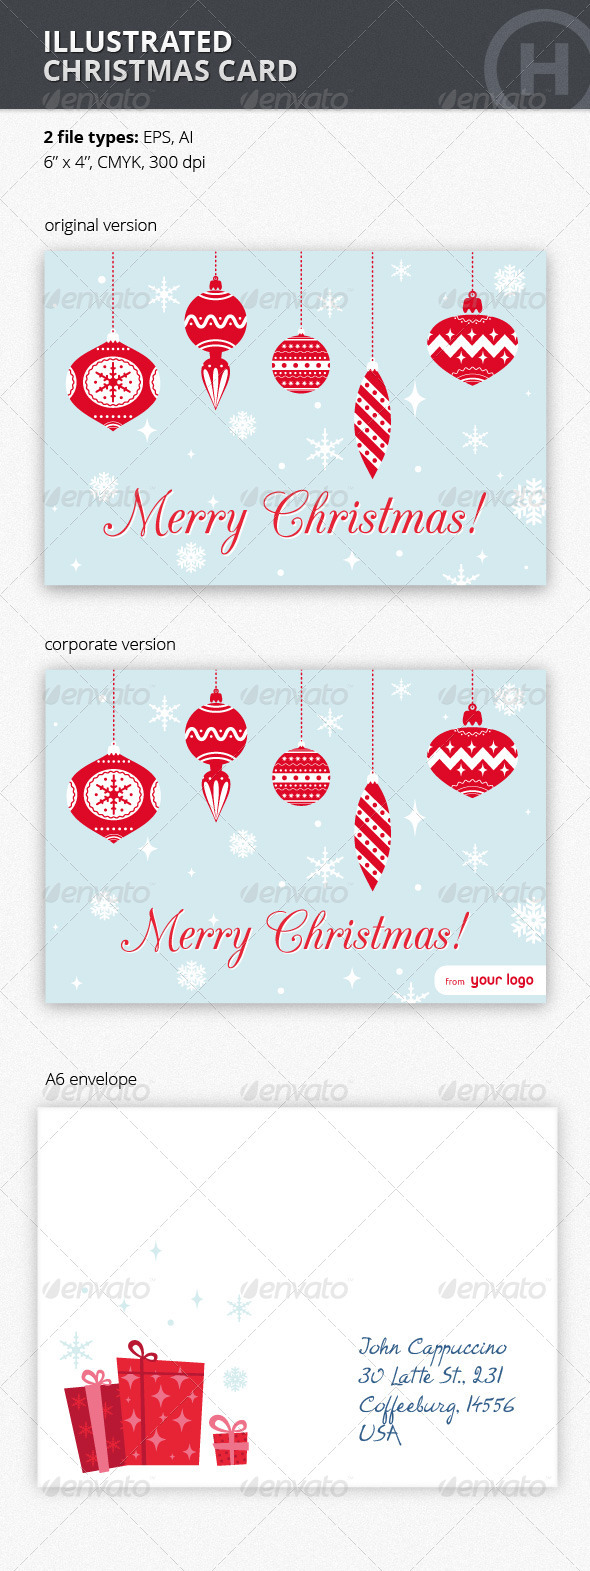 GraphicRiver Illustrated Christmas Card 3457275